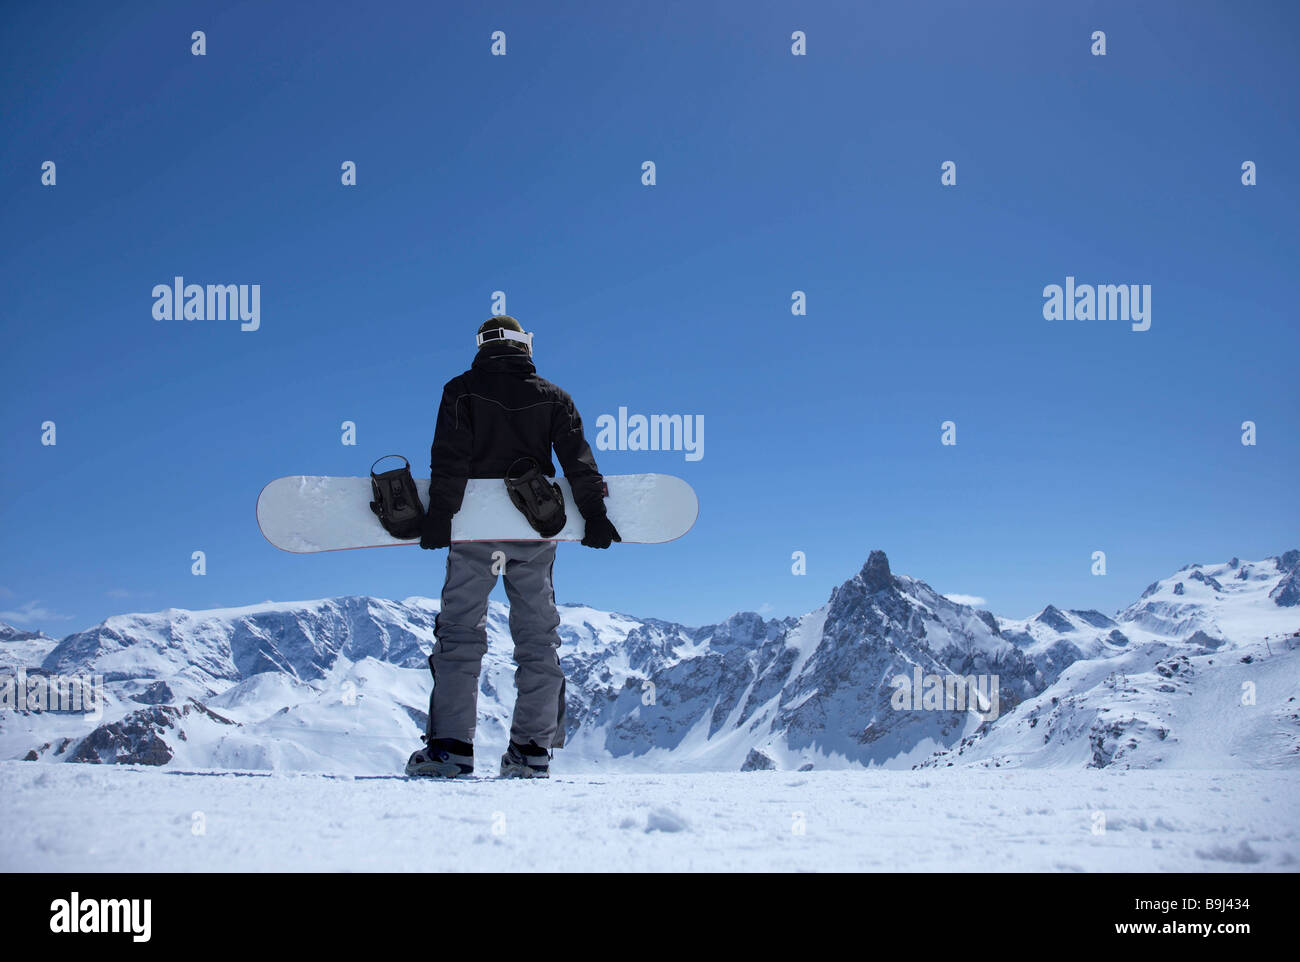 Man standing on mountain with snowboard - Stock Image